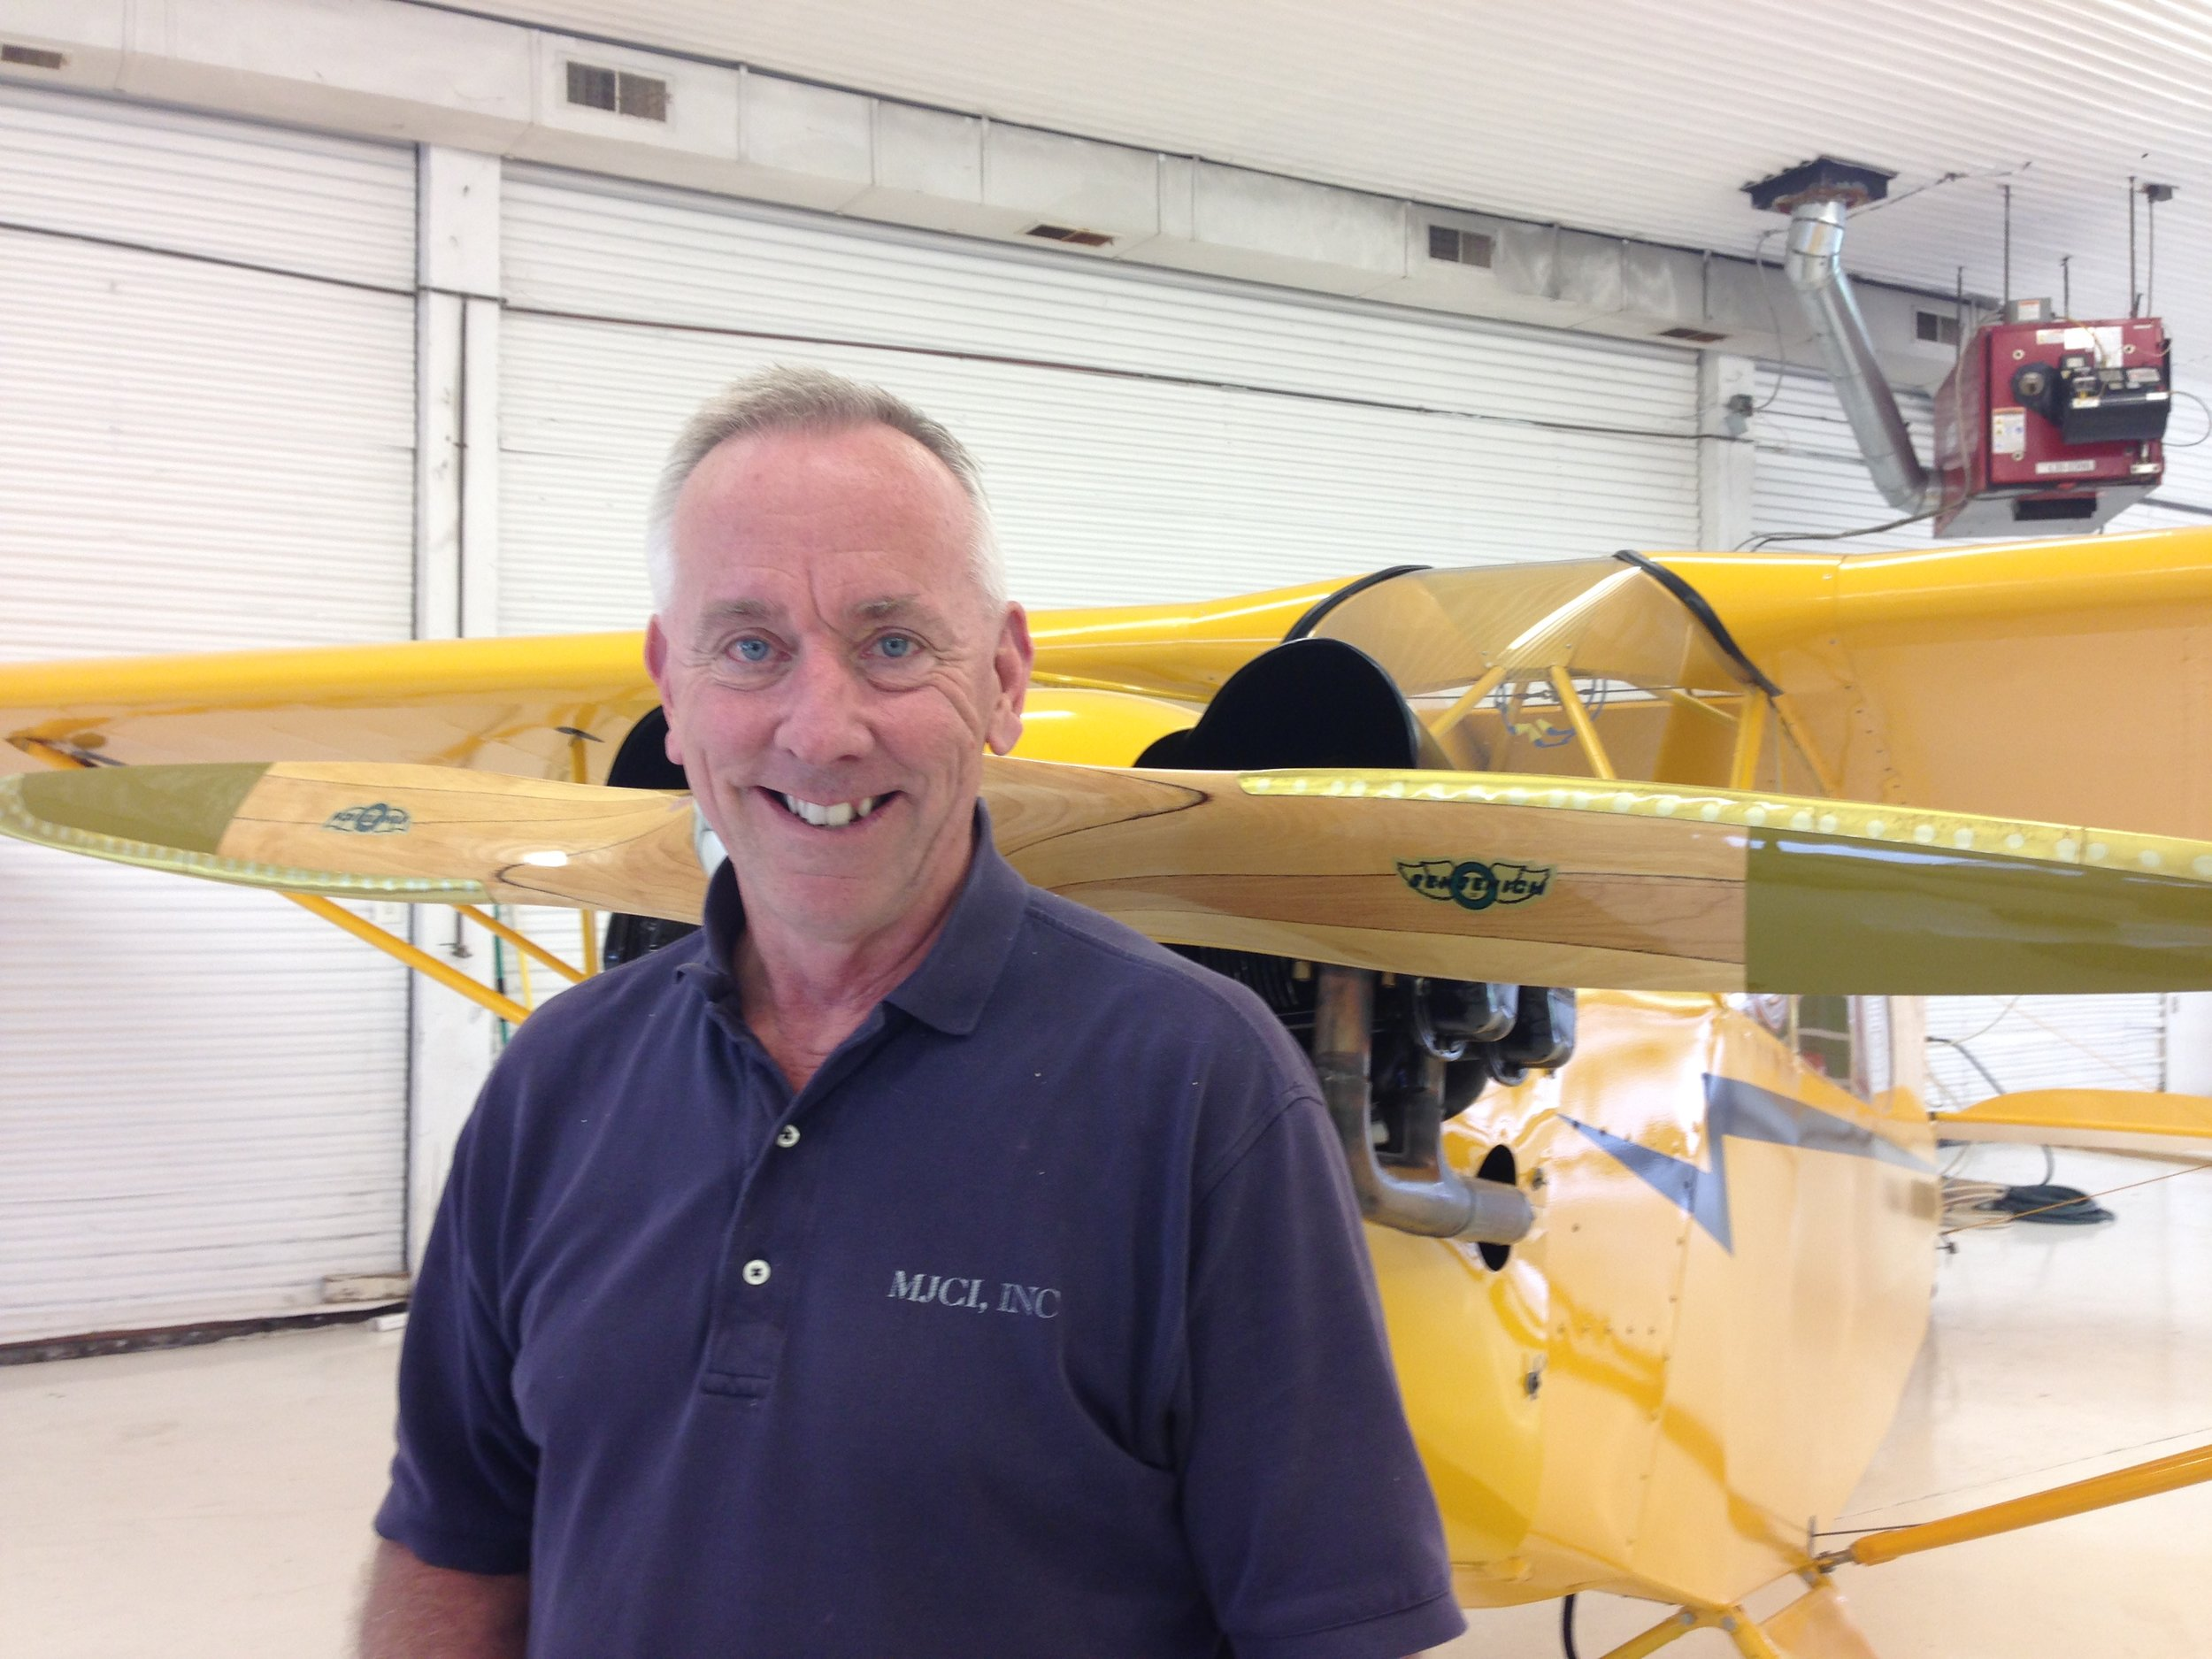 Mark Cross - Chief Flight Instructor – ATP, CFI, CFII, & MEIOwner and a Landscape Architect of MJCI, Inc., Design/Build Company in Fairfax, VA. Learned to fly in 1972 at New Garden Flying Field, Kennett Square, PA. Earned his Flight Instructor certificates in early 80's; chief pilot/director of operations and check airman for 135 operation in '84 - '87; air ambulance pilot in '86 - '87; part time corporate pilot during '87- '95; and the Chief Flight Instructor at Airport Services - APS Flight School since 2011. Restored and owns a 1940 J3 Cub. Avid fly fisherman. Enthusiastic for folks who really want to learn!